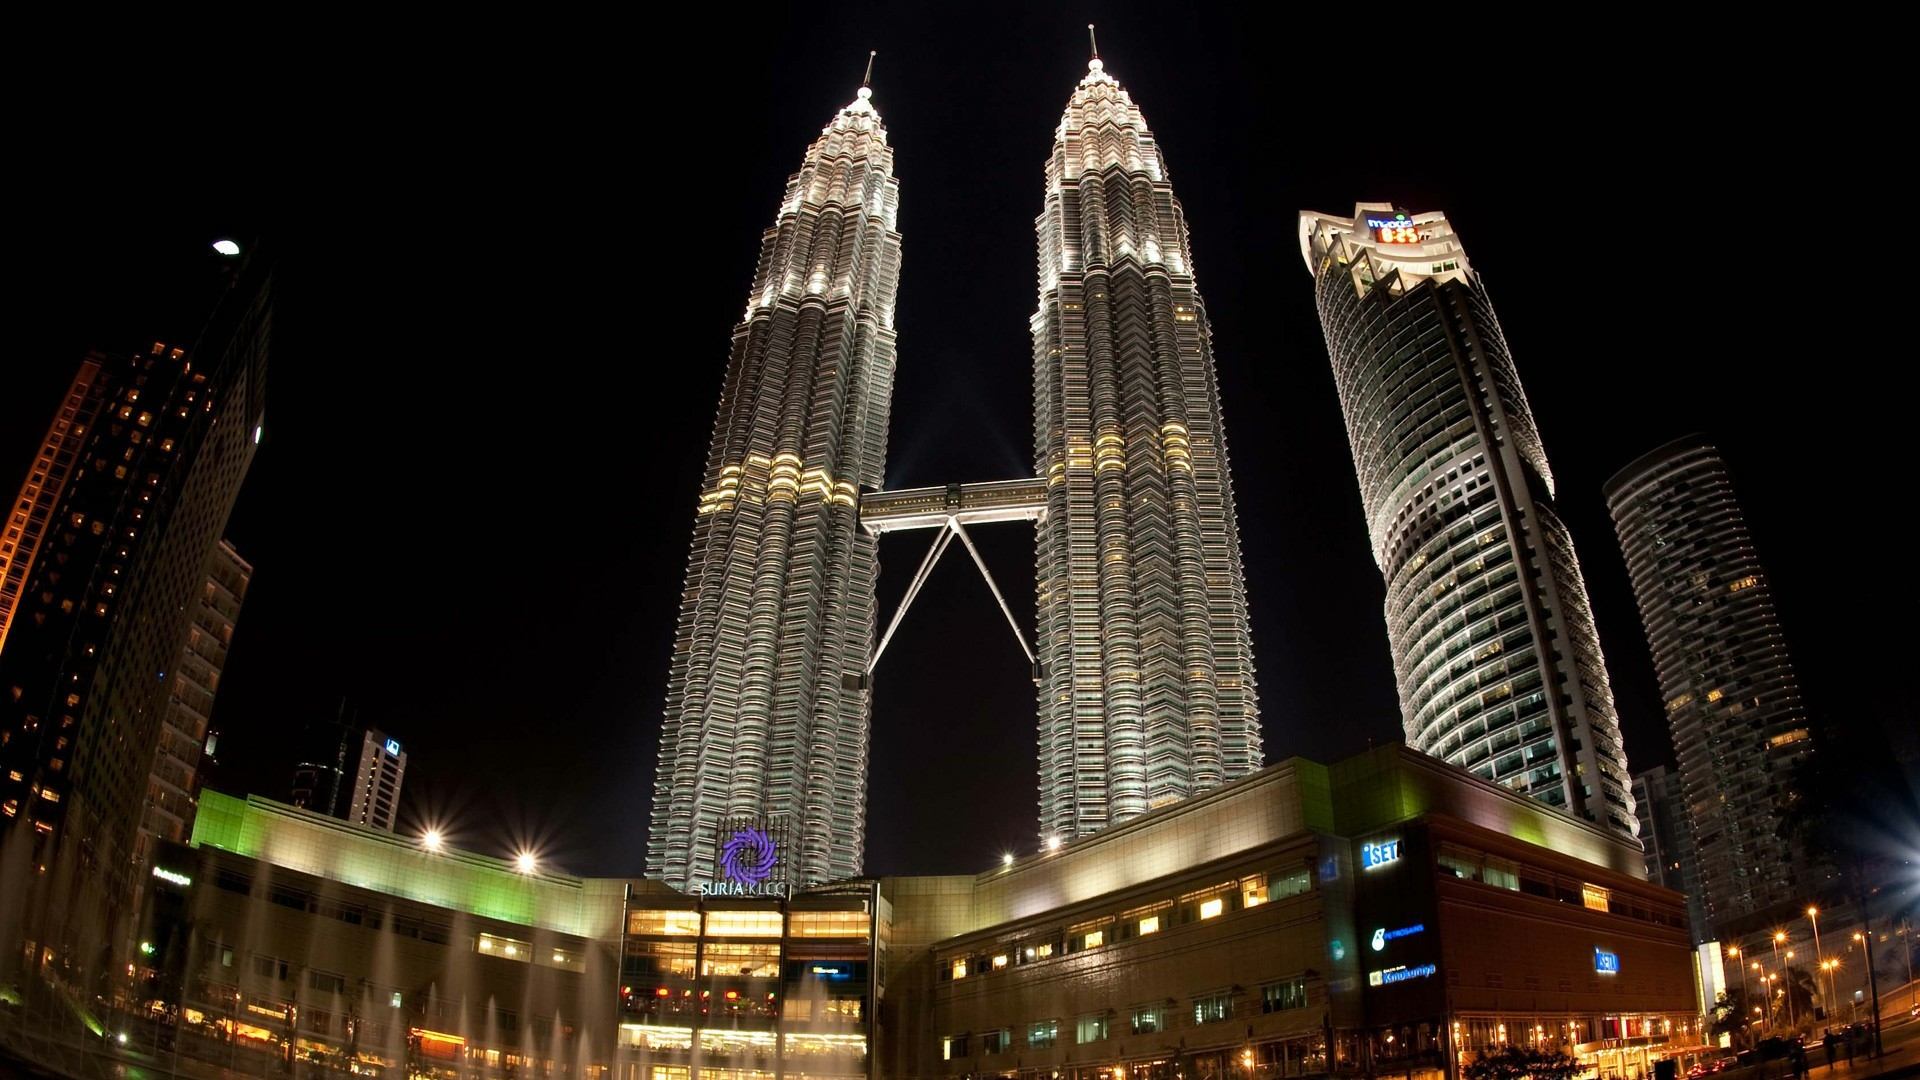 Res: 1920x1080, Petronas Twin Towers (Kuala Lumpur) Wallpaper | Wallpaper Studio 10 | Tens  of thousands HD and UltraHD wallpapers for Android, Windows and Xbox